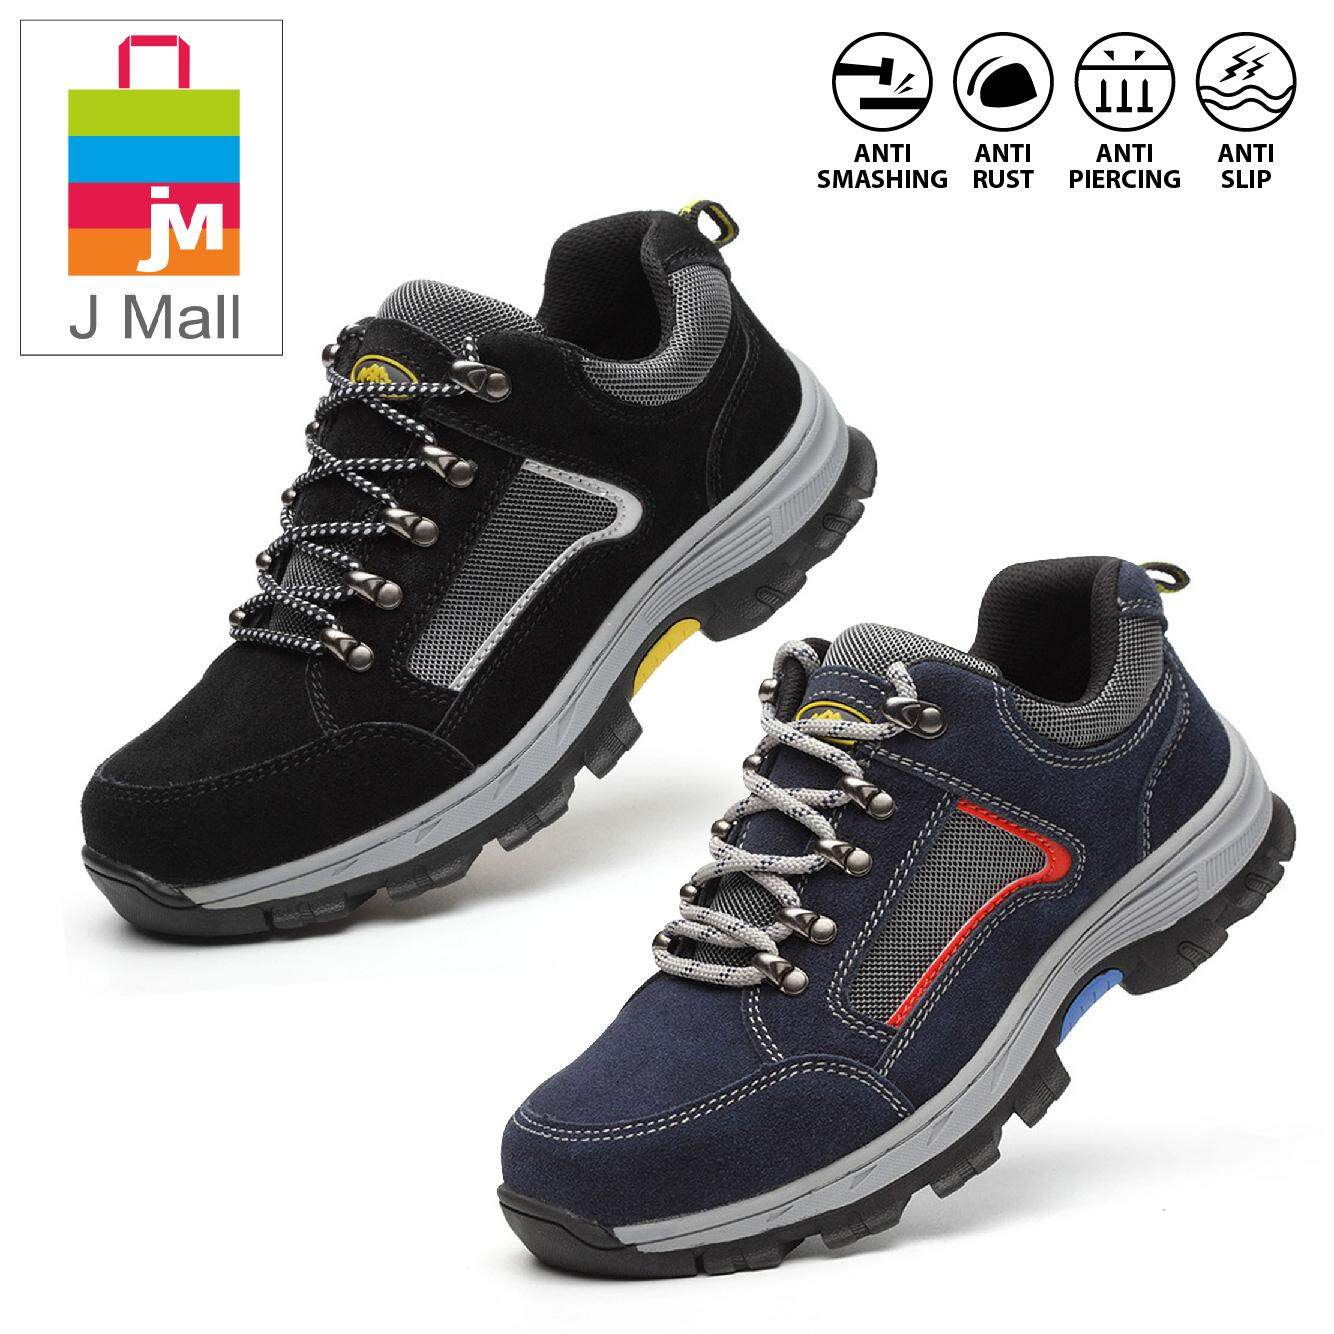 J Mall Fashion Low-Cut Steel Toe Cap Work Safety Shoes 506 - Black / Blue By J Mall.